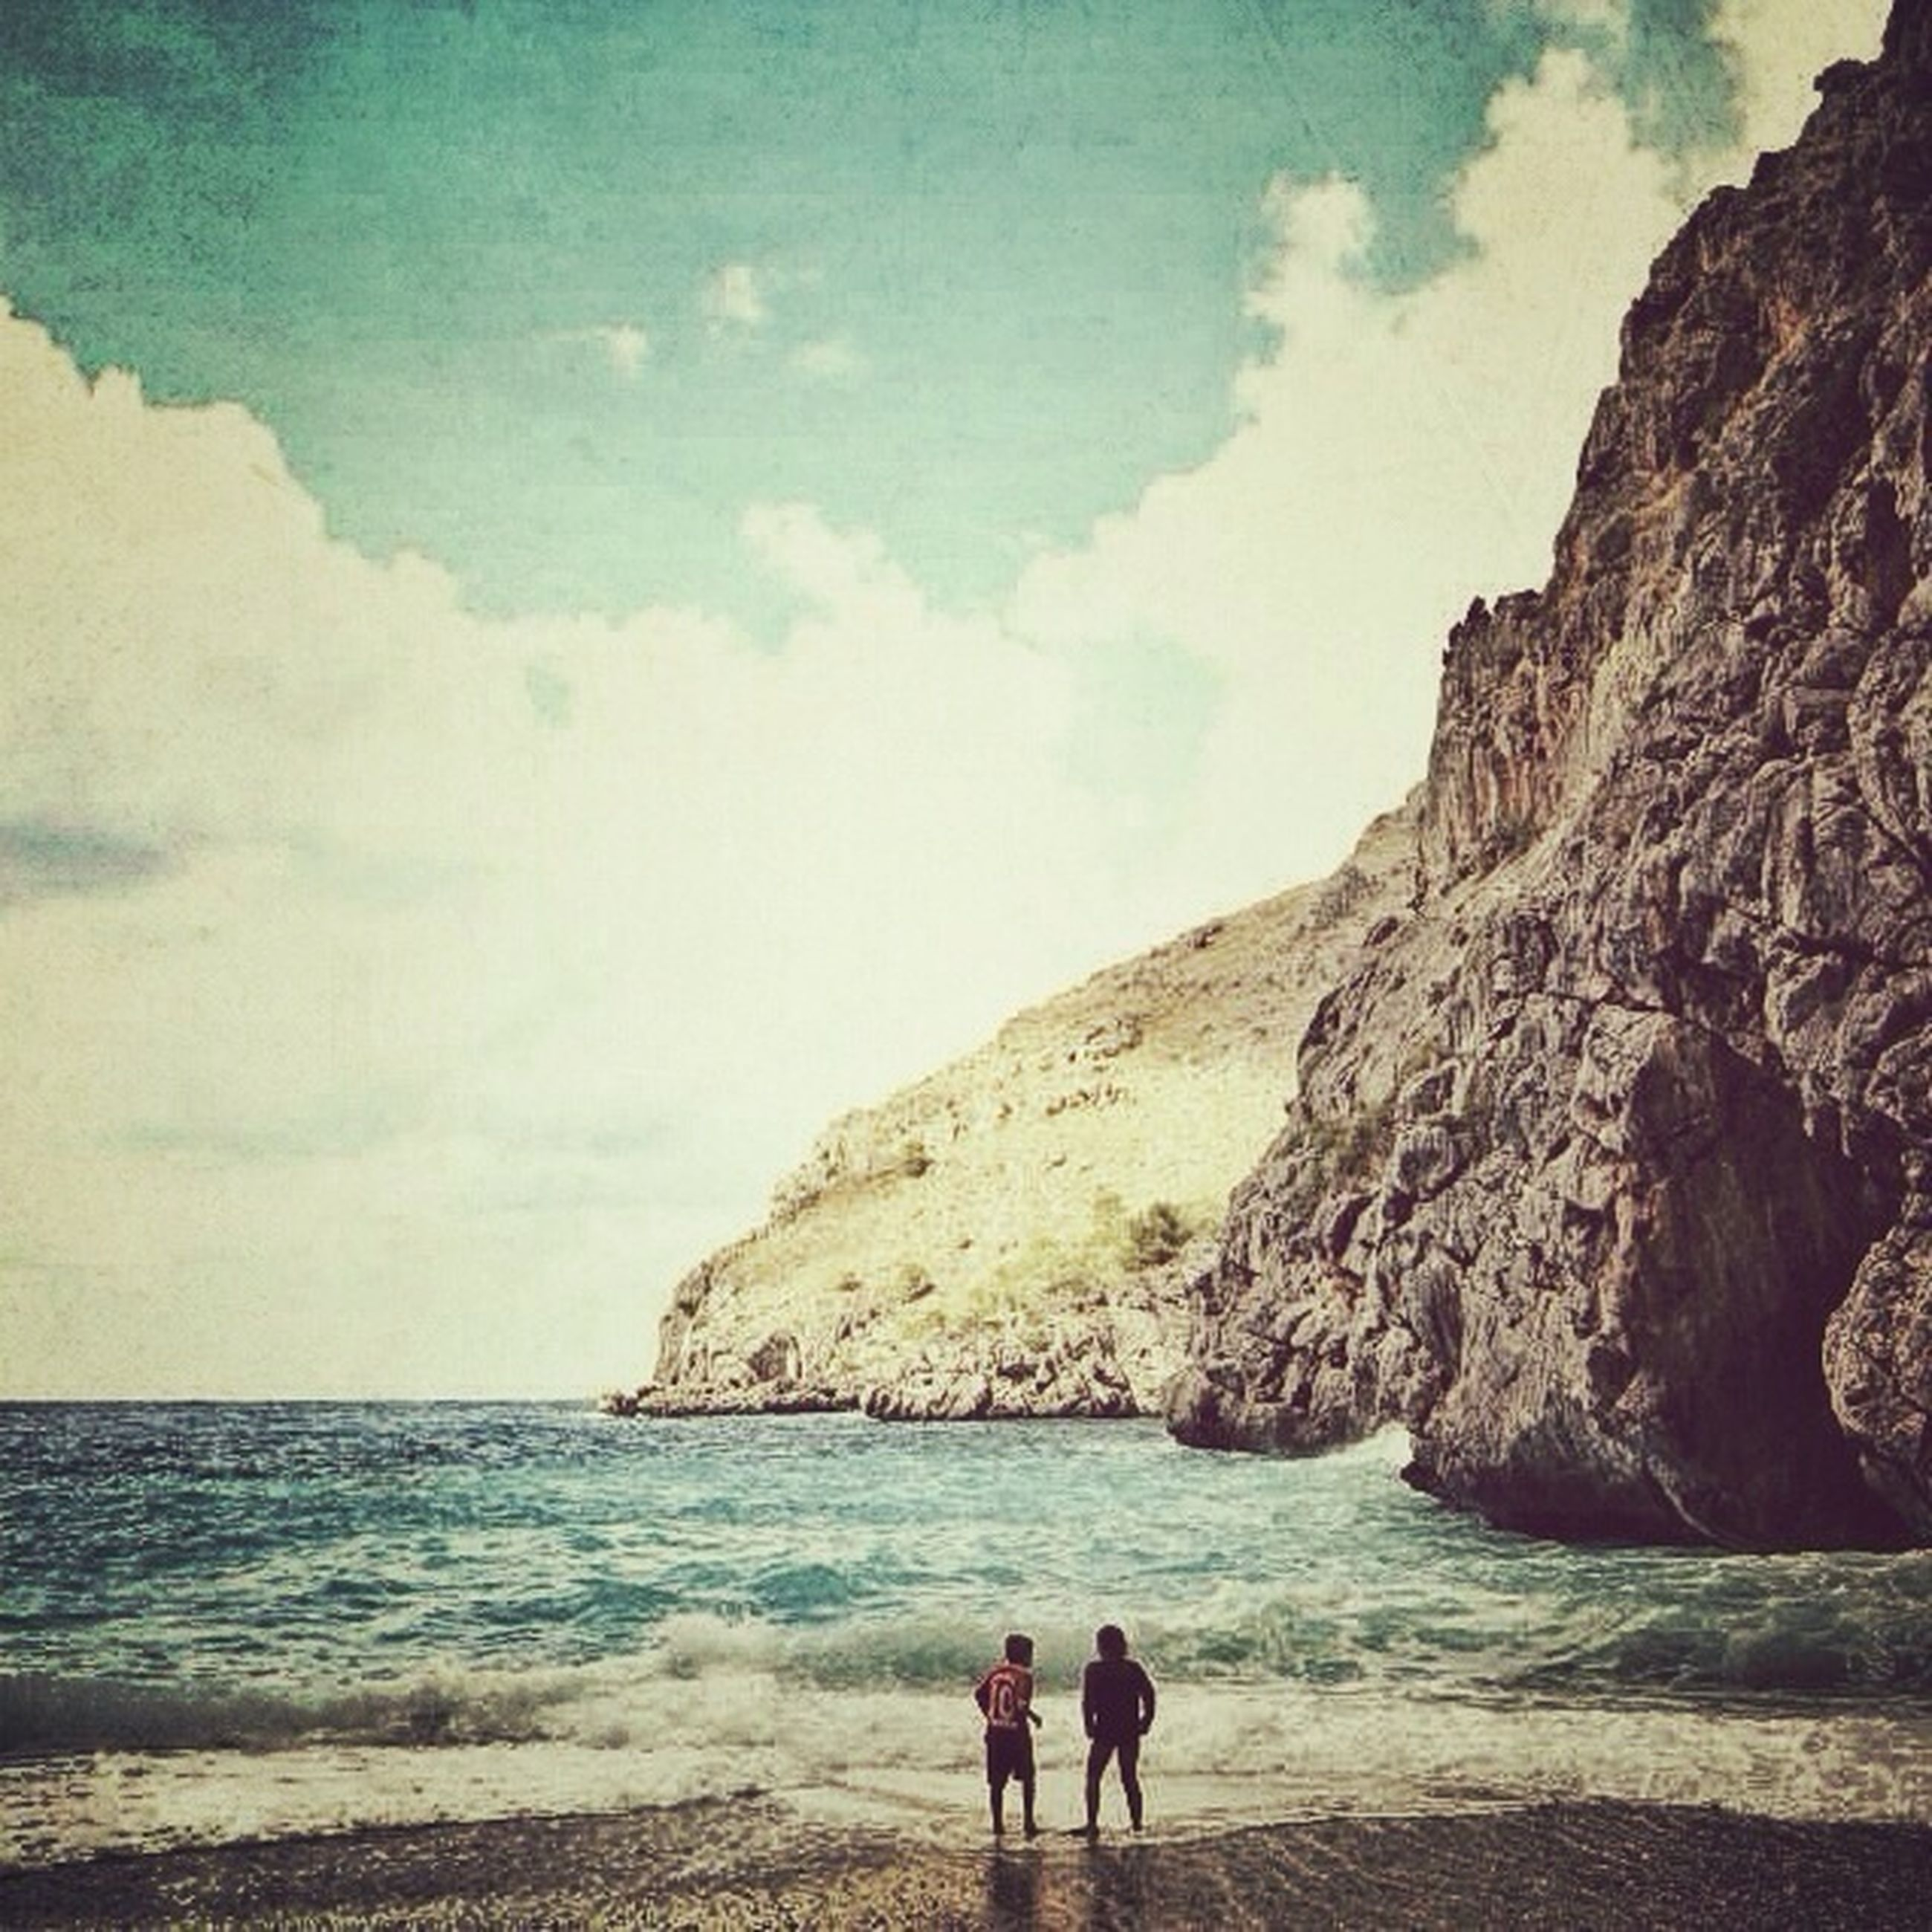 sea, beach, water, sky, leisure activity, lifestyles, men, togetherness, horizon over water, shore, scenics, vacations, beauty in nature, tranquility, person, tranquil scene, nature, rock - object